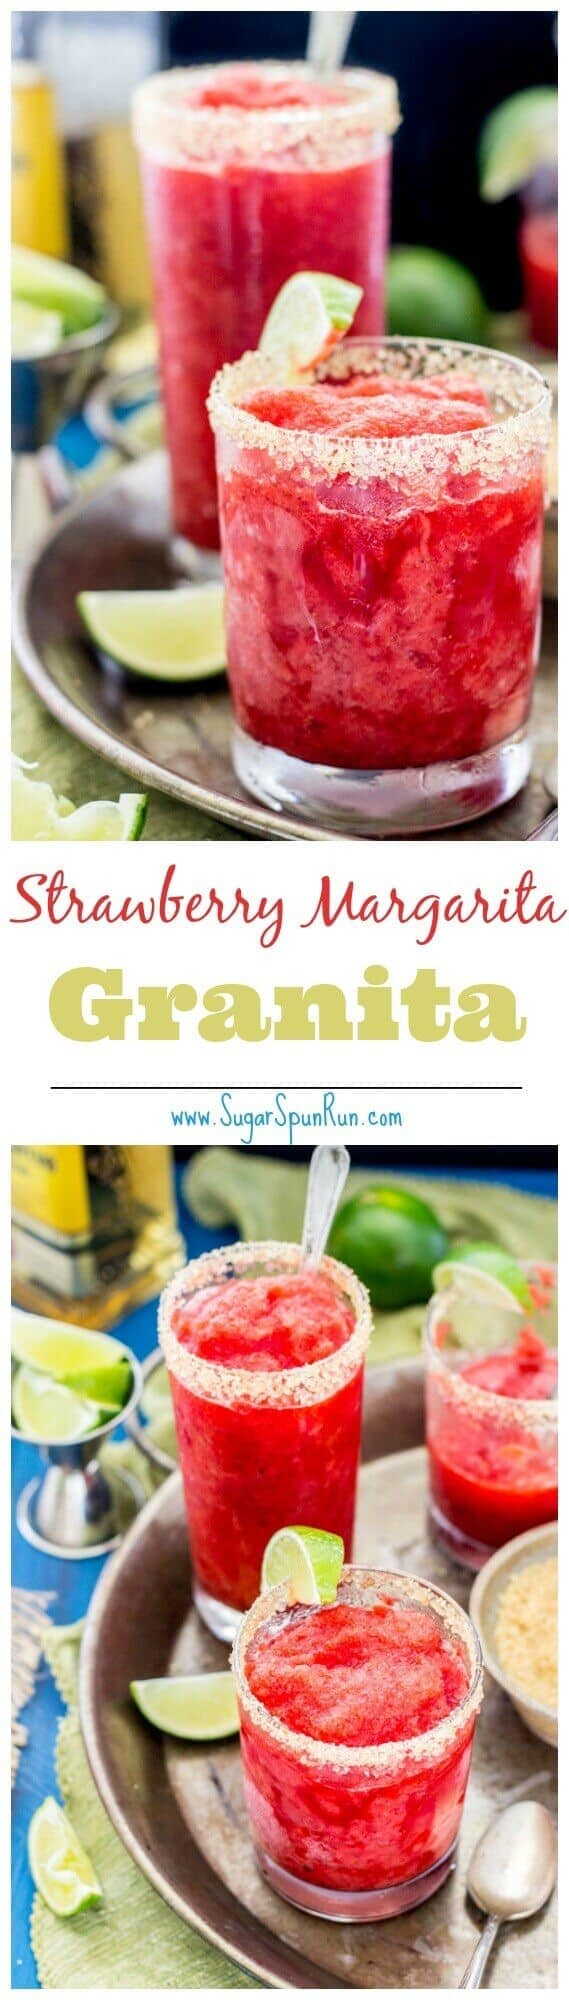 Strawberry Margarita Granita - Sugar Spun Run